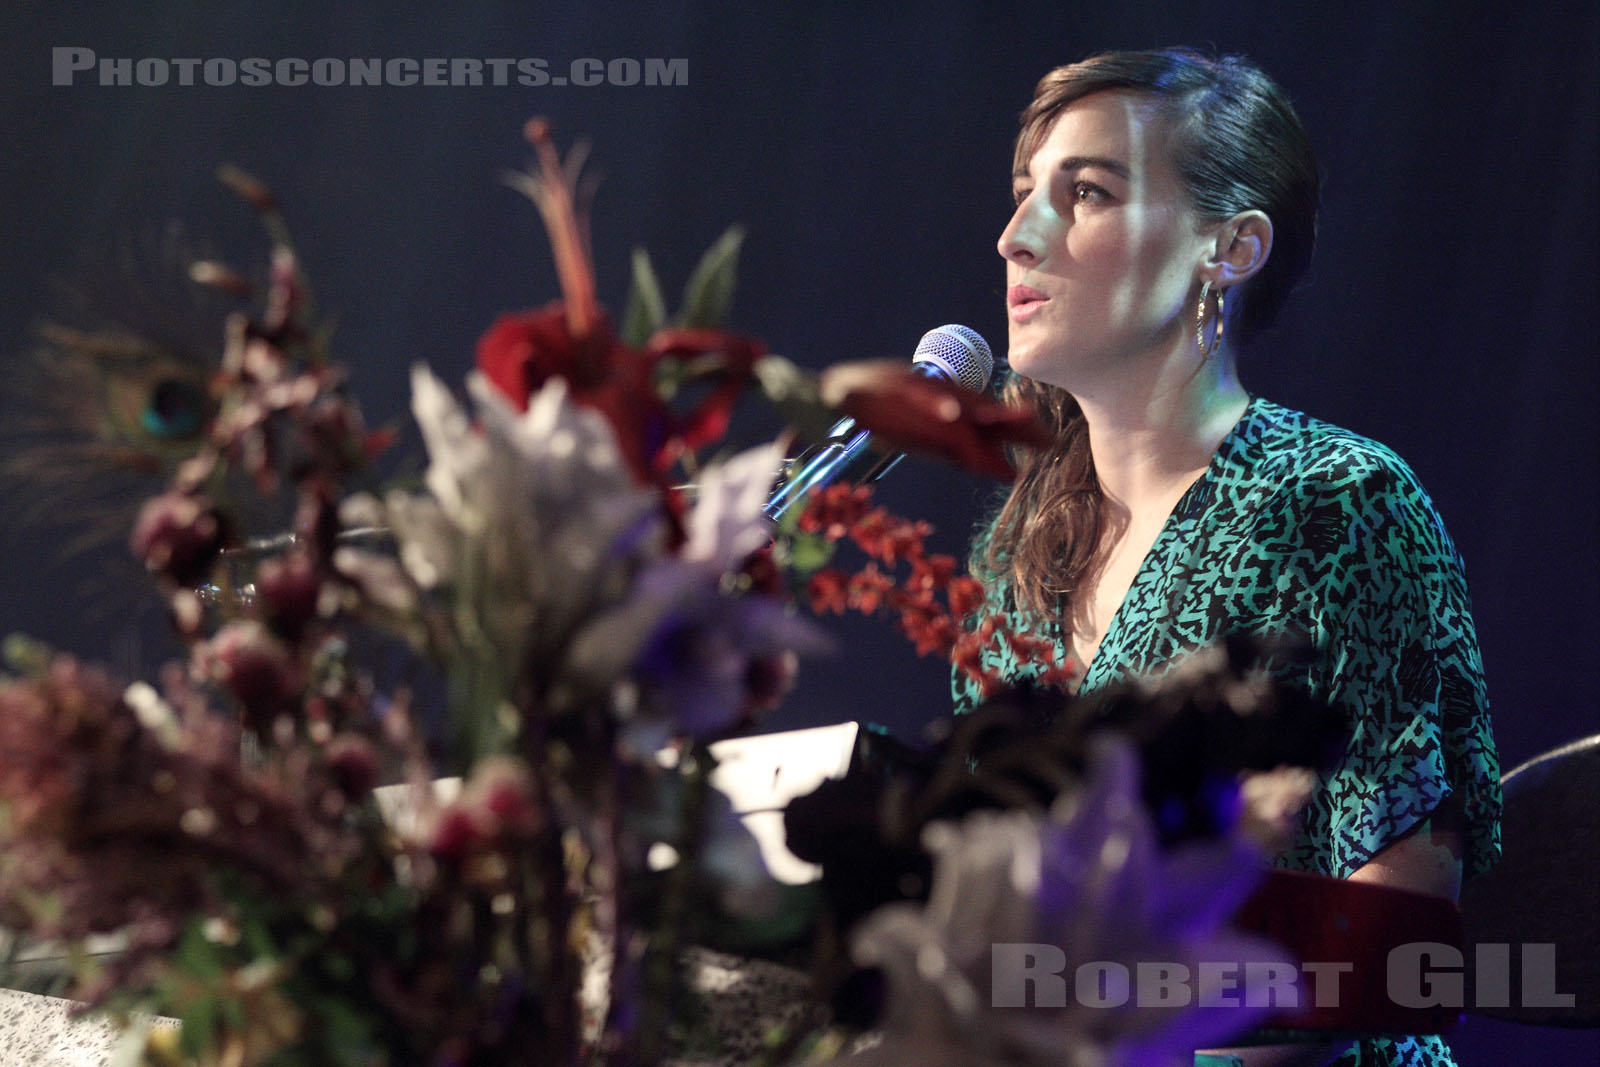 JULIETTE ARMANET - 2014-09-27 - PARIS - Le Trianon